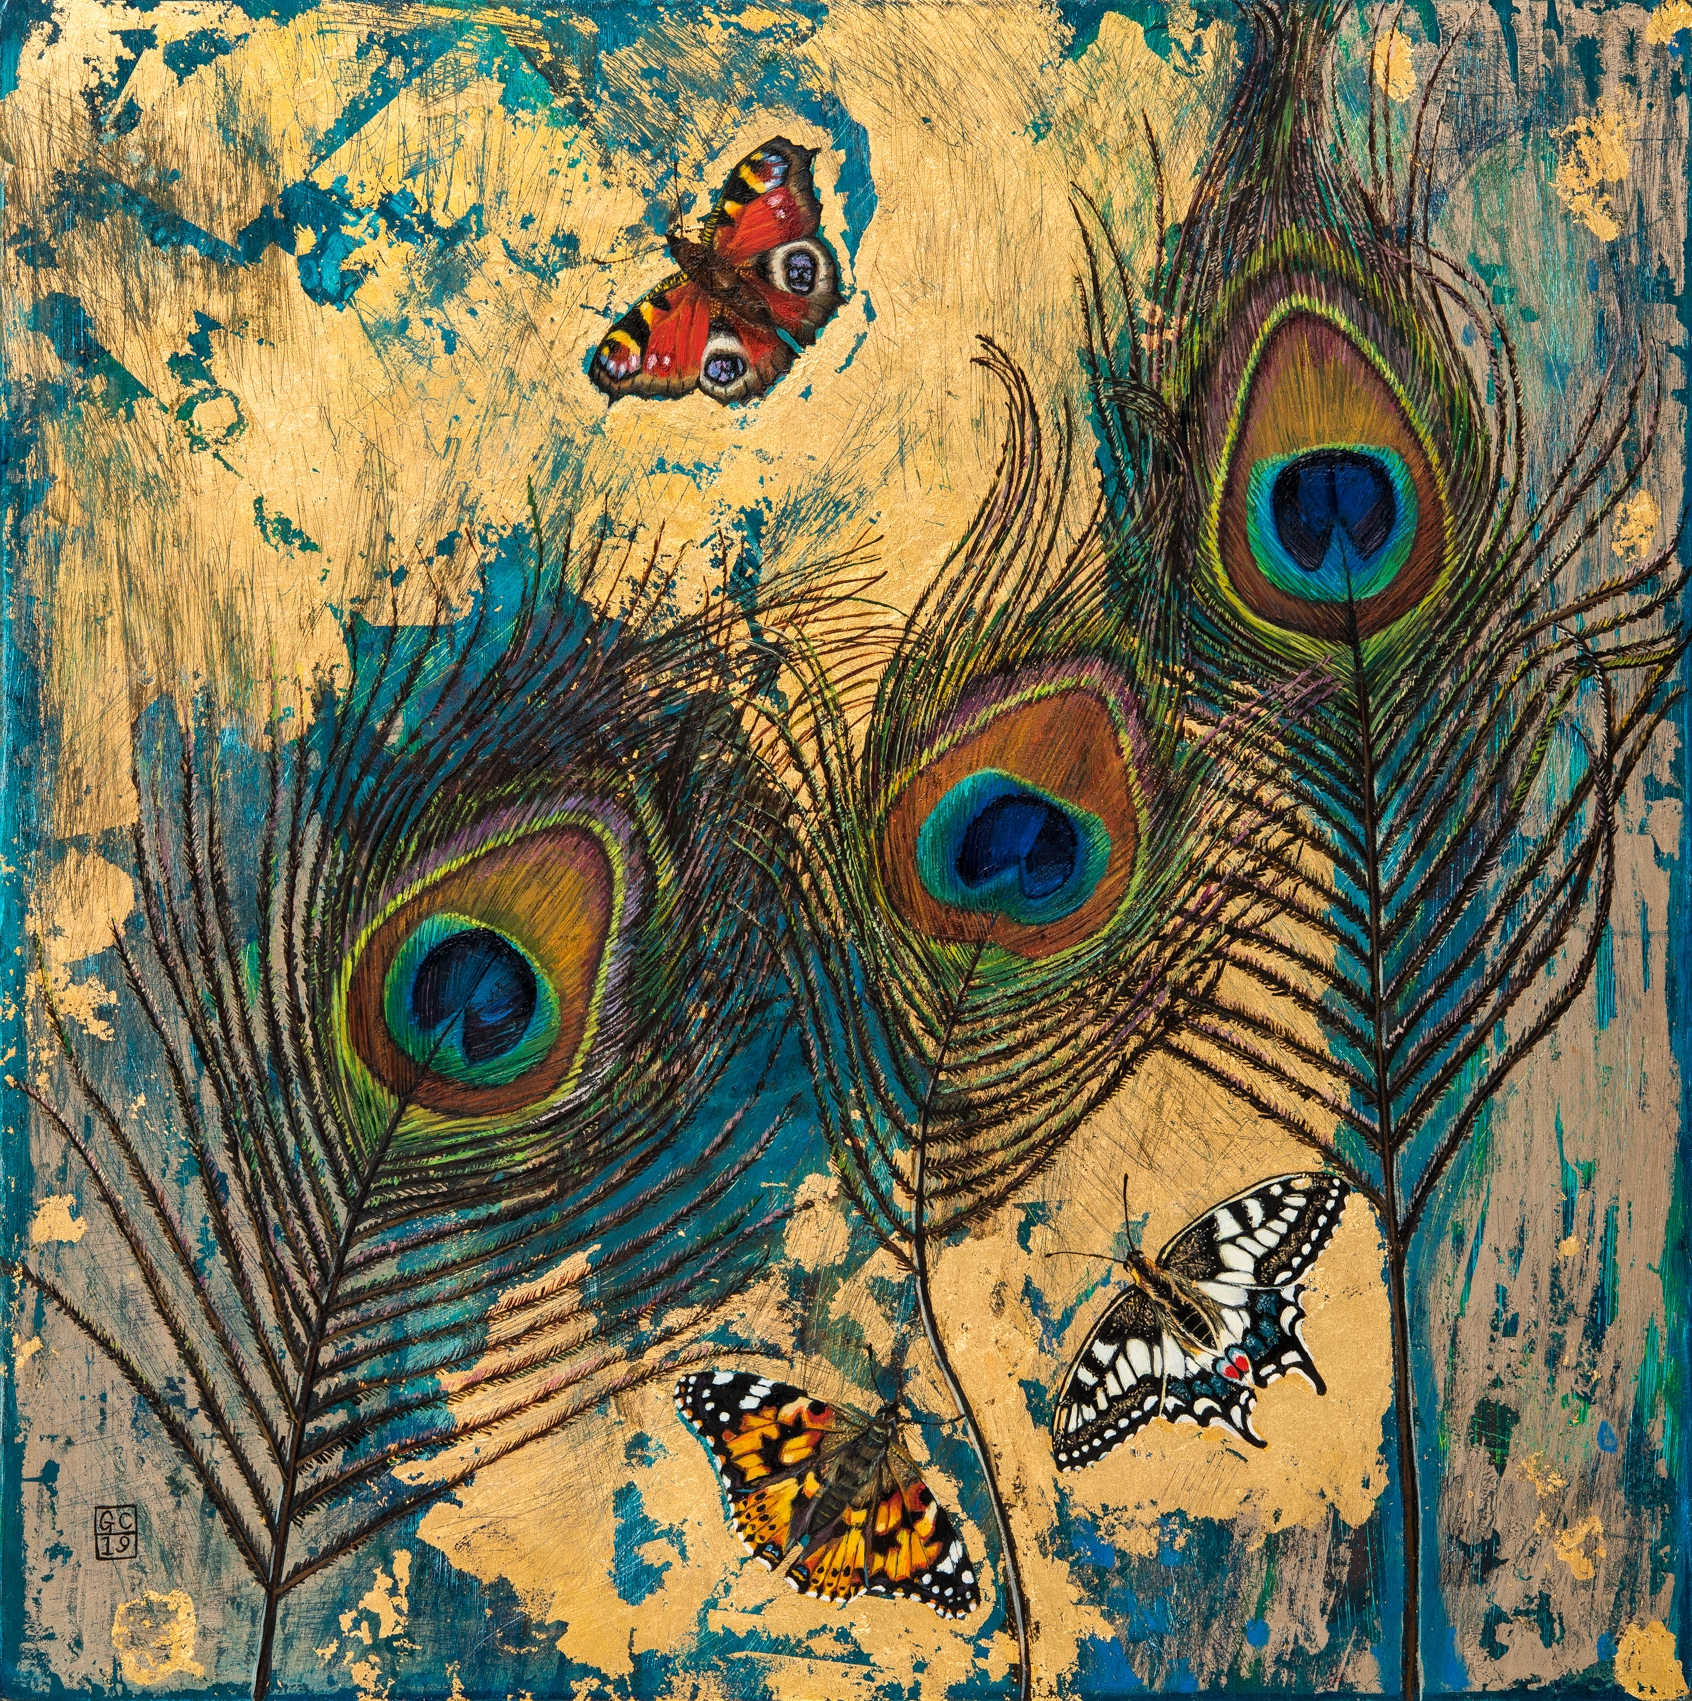 'Peacock Feathers and Butterflies', Oil and Gold Leaf on Panel, 26 x 26cm, SOLD